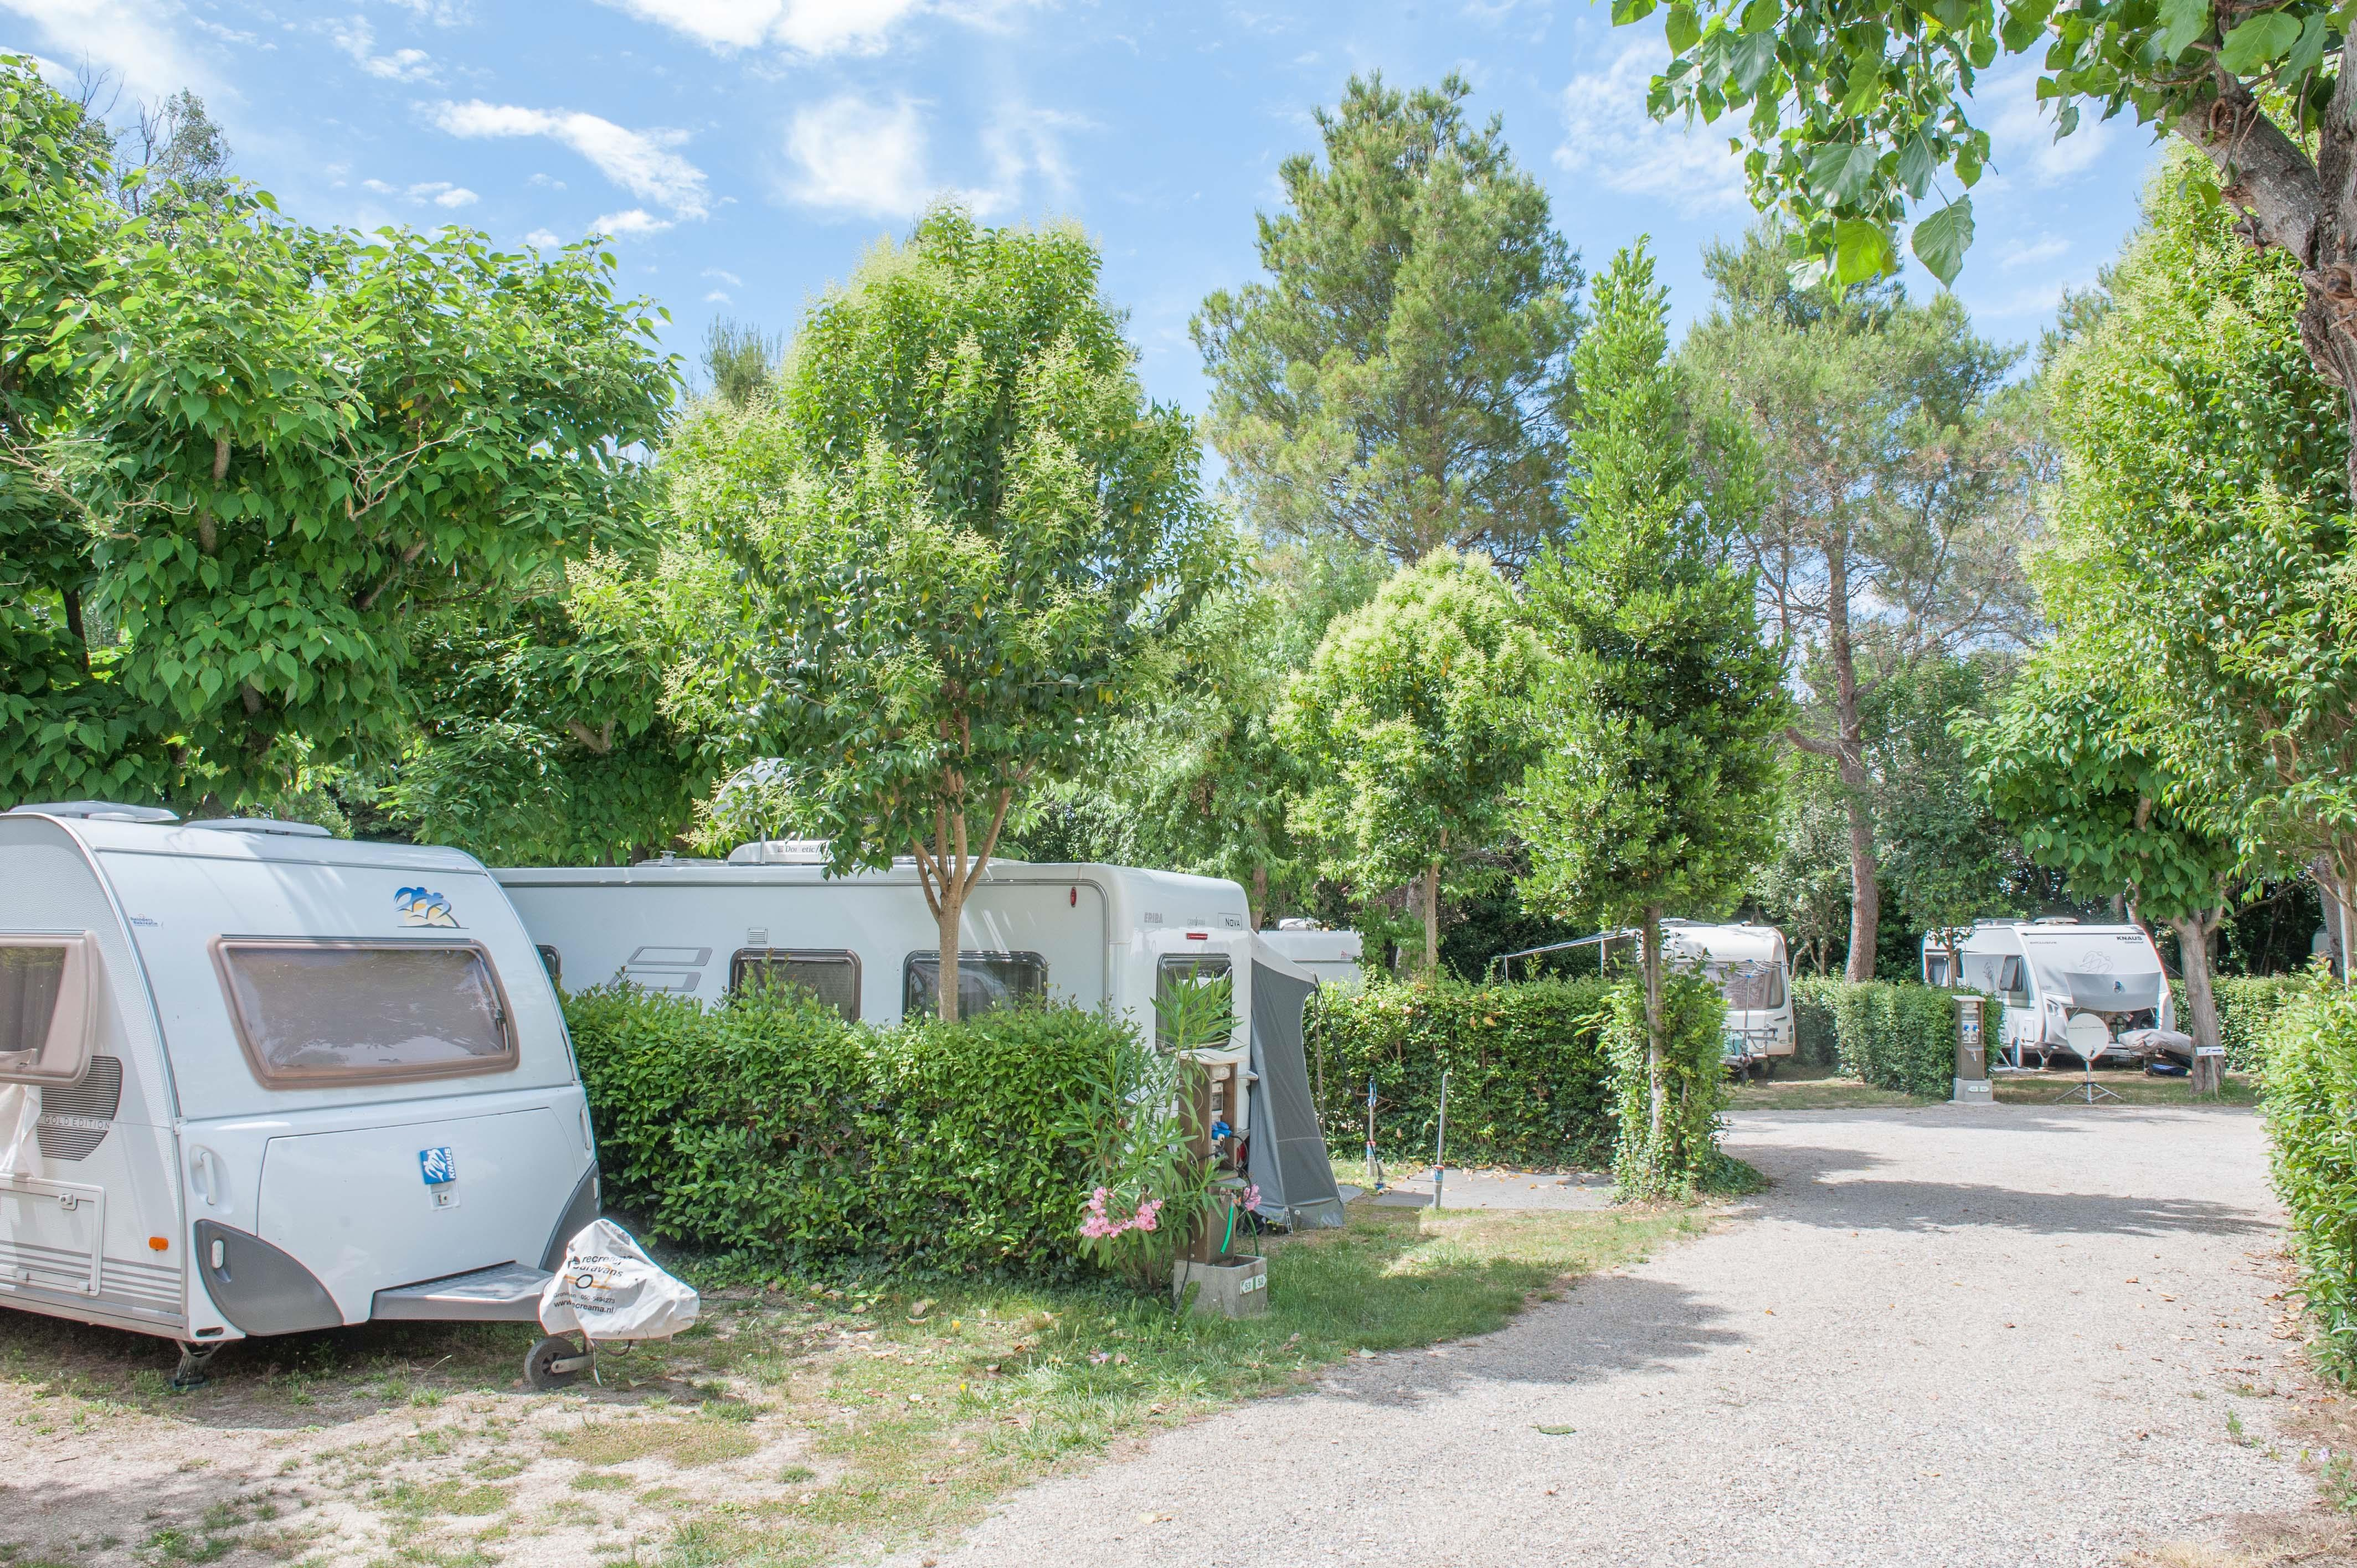 Emplacement - Forfait Emplacement Anwb + 1Véhicule - Camping Saint Gabriel